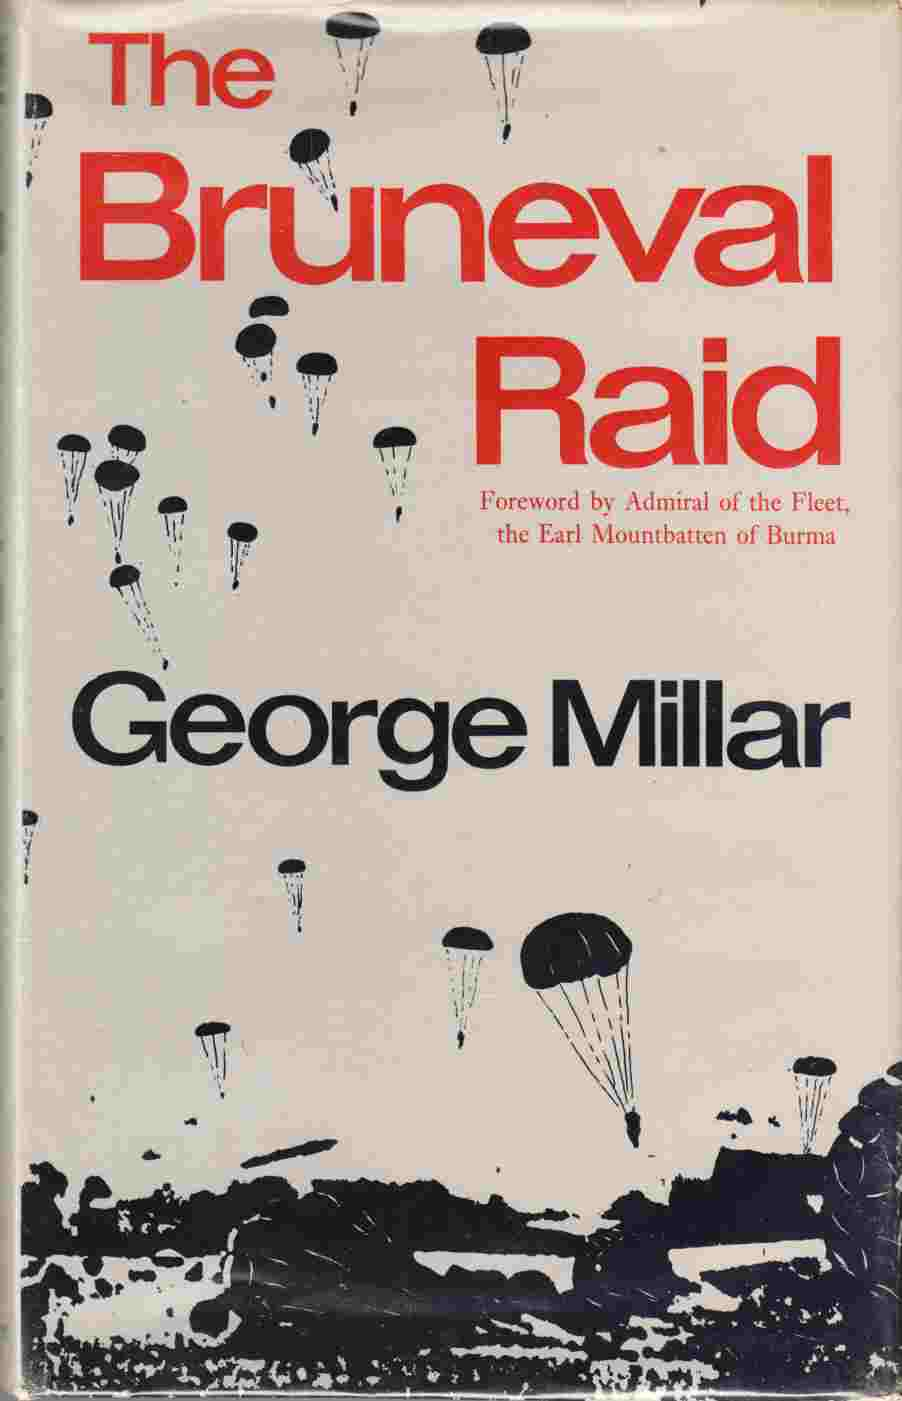 Image for The Bruneval Raid: Flashpoint of the Radar War